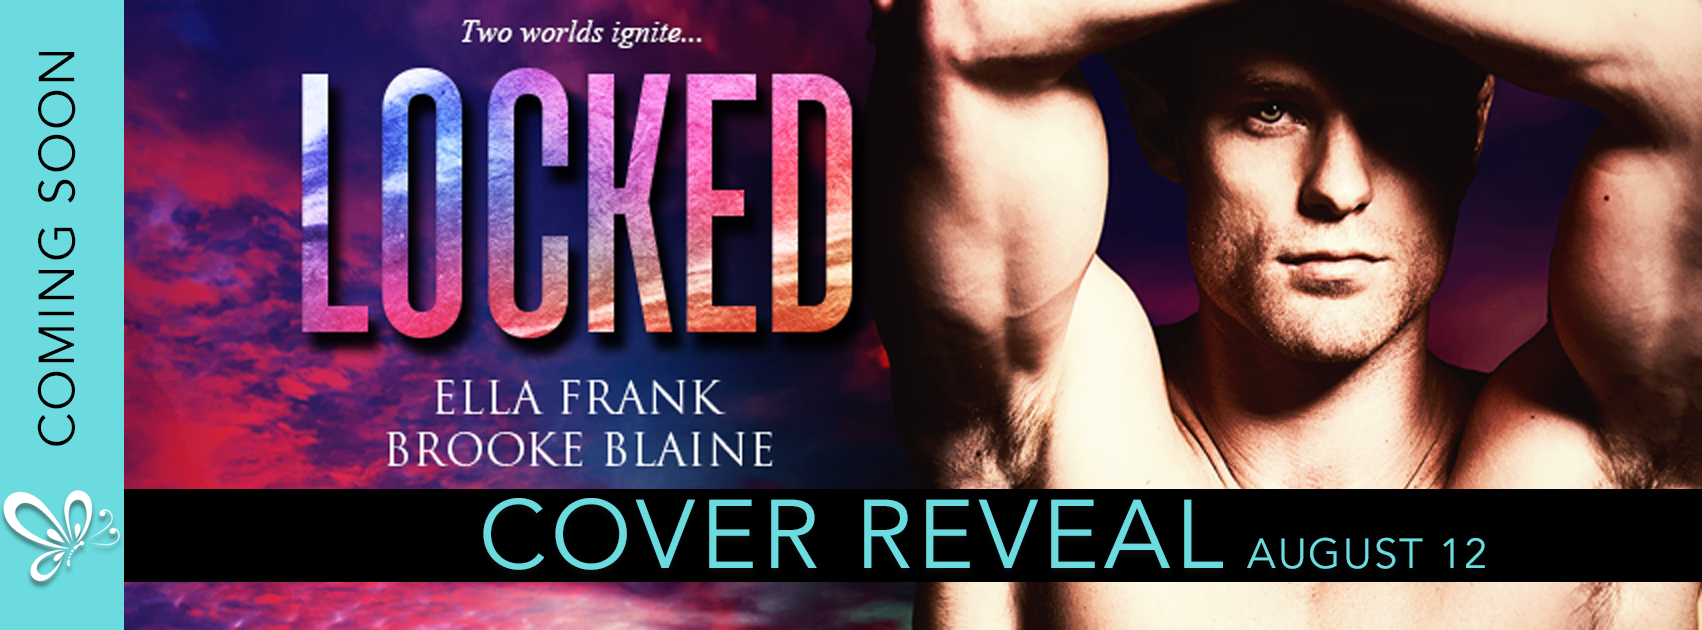 Locked cover reveal banner